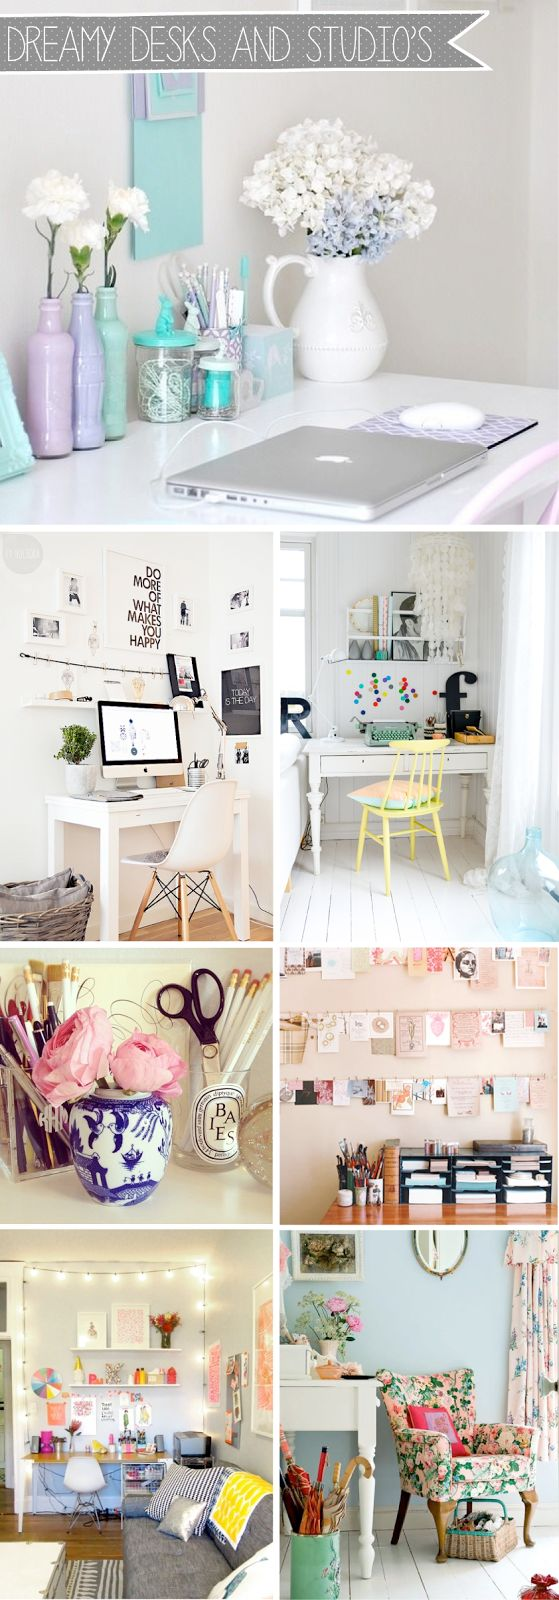 Pretty ideas for your room.